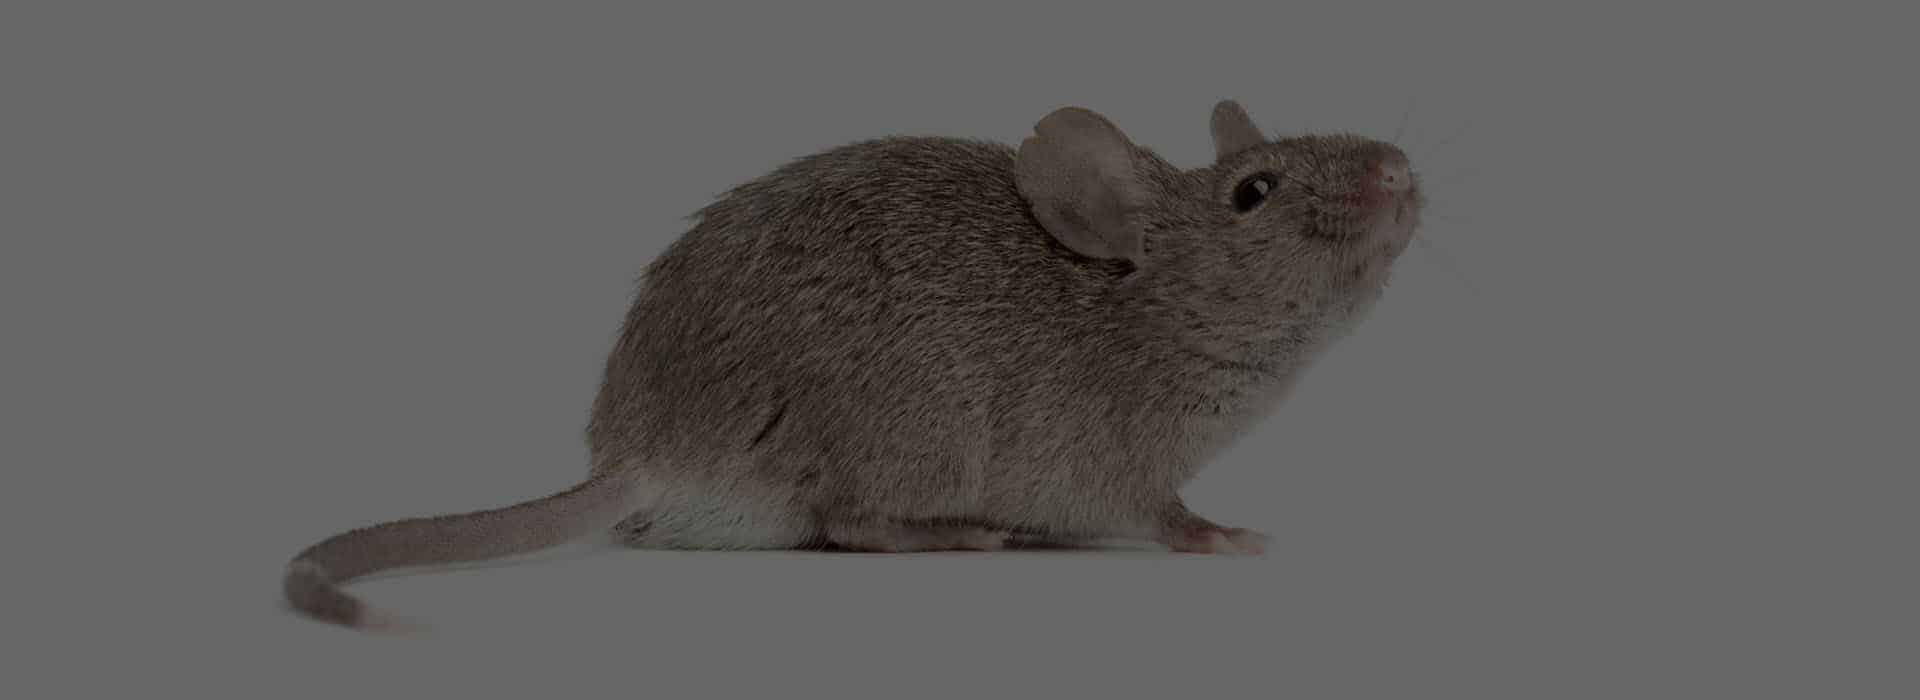 Mice-Mouse-Pest-Control-St-Helens